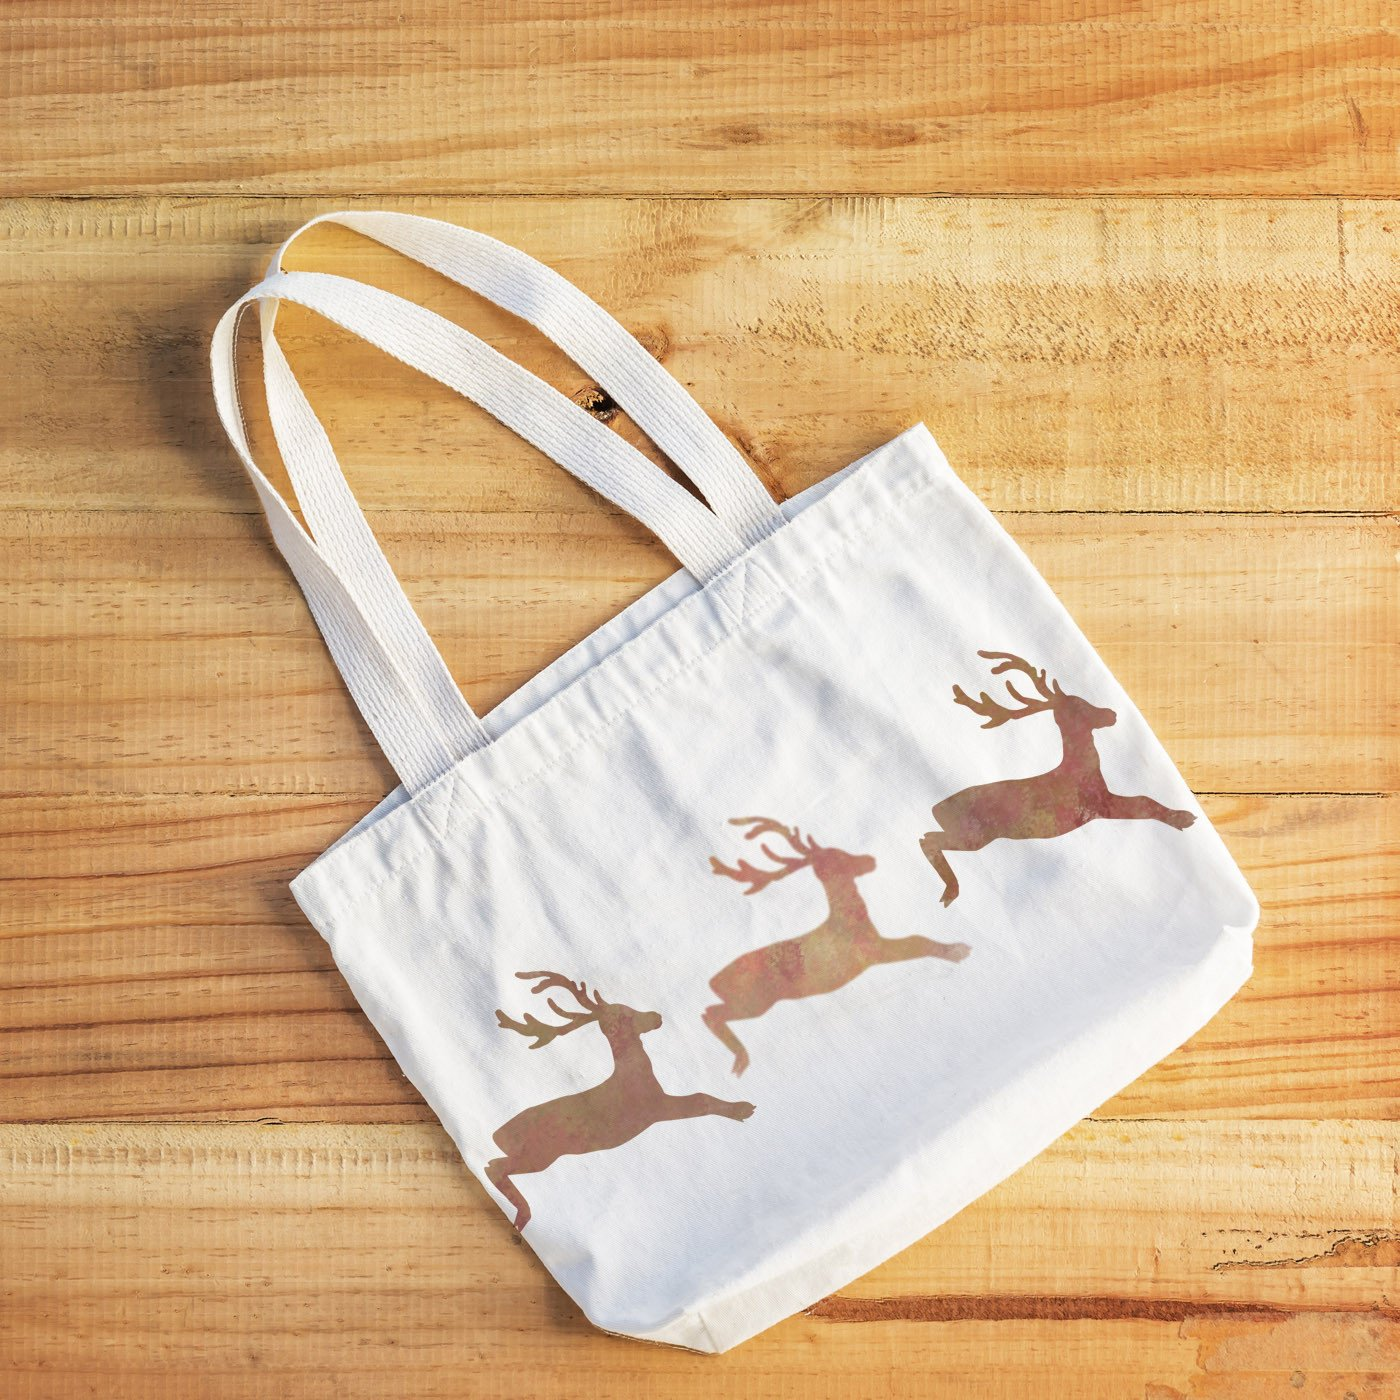 CraftStar Leaping Stag Stencil on fabric